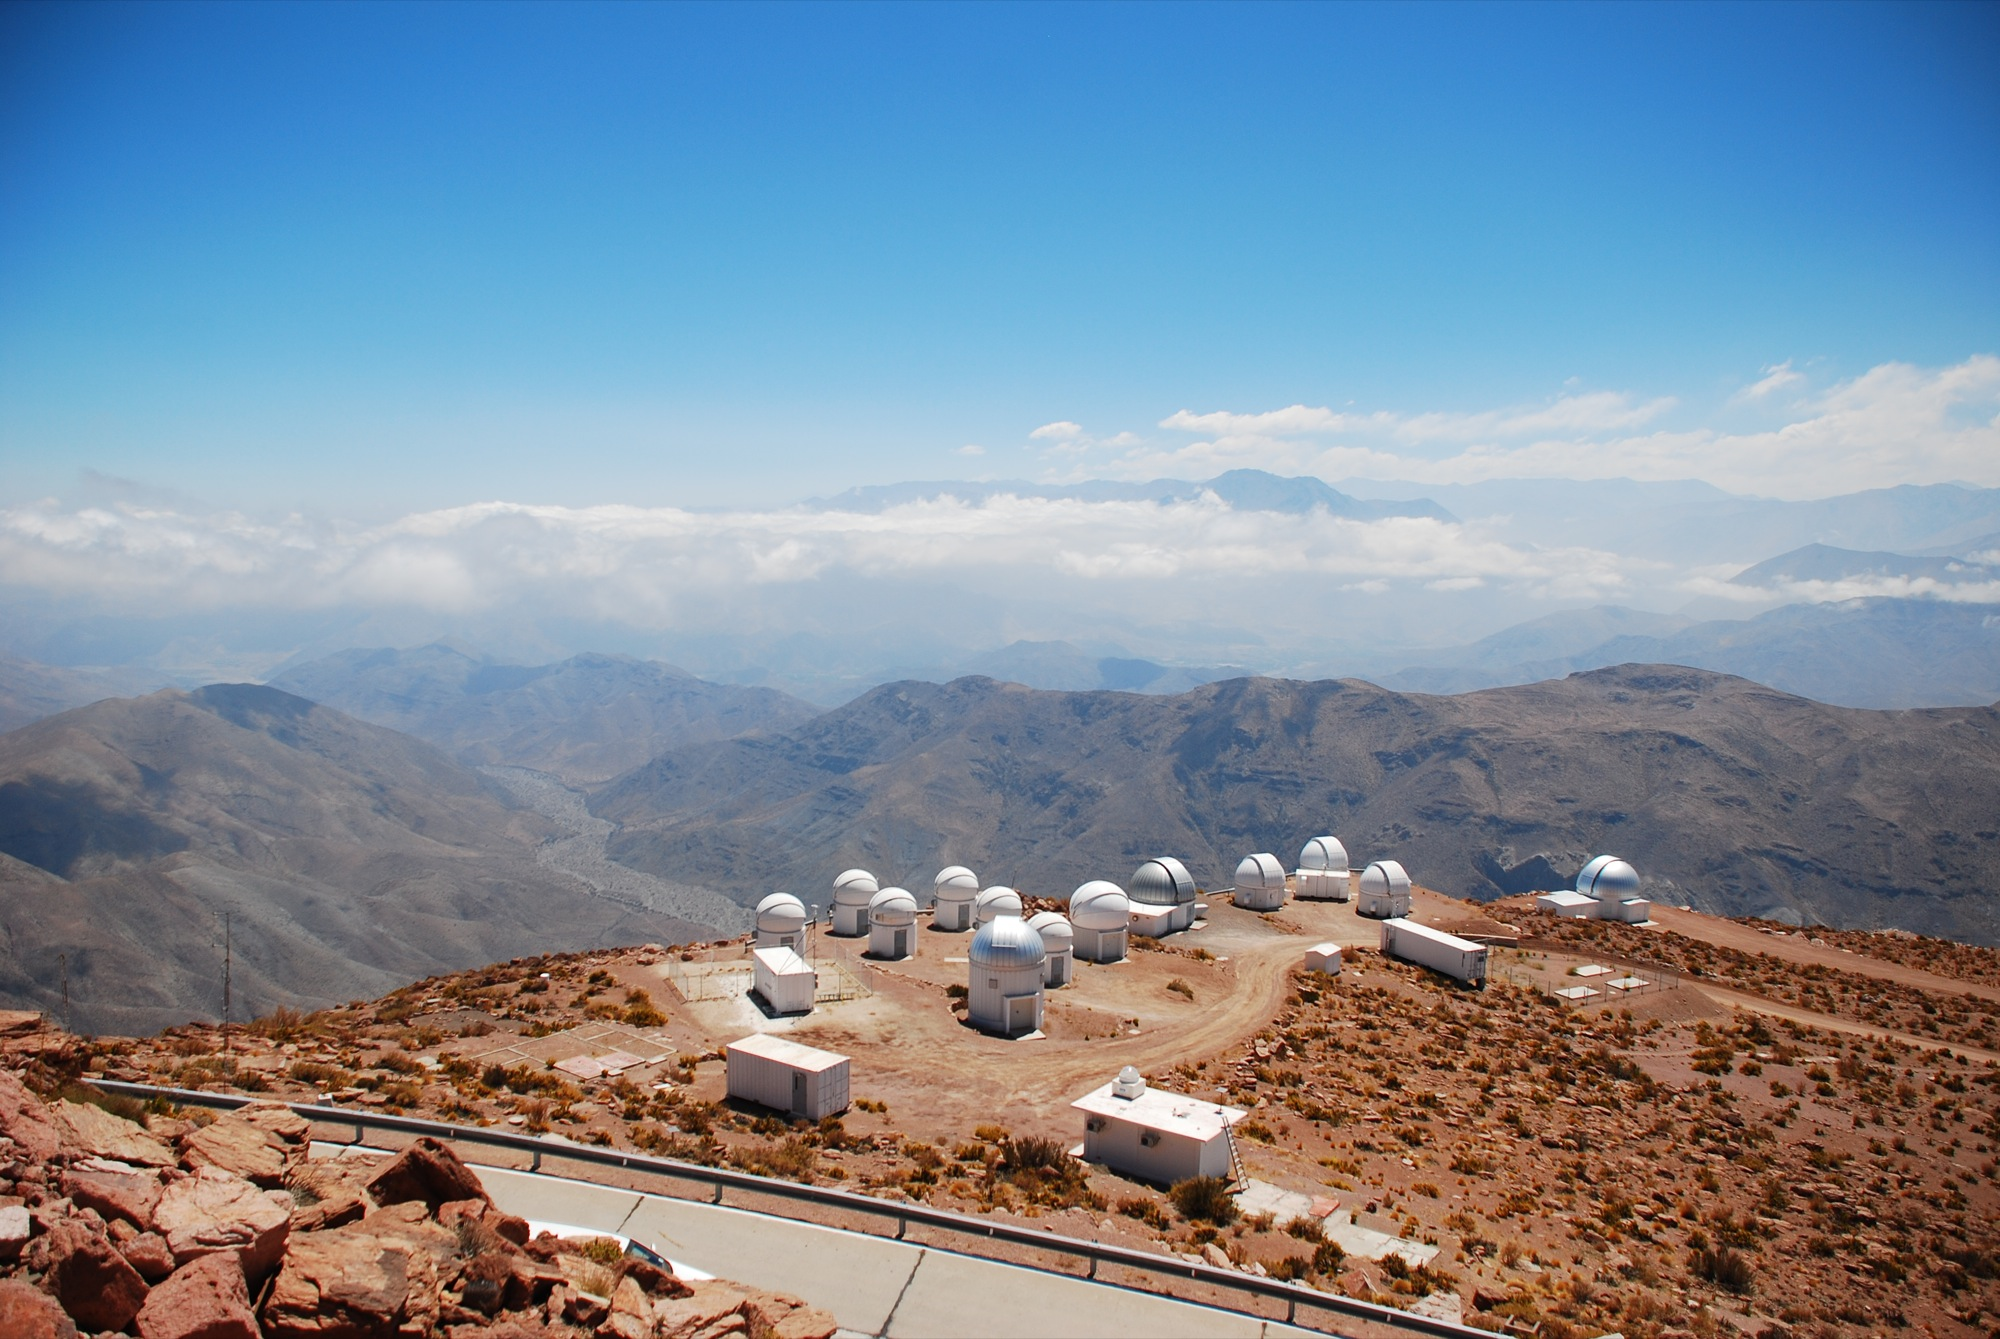 Small telescopes at Cerro Tololo